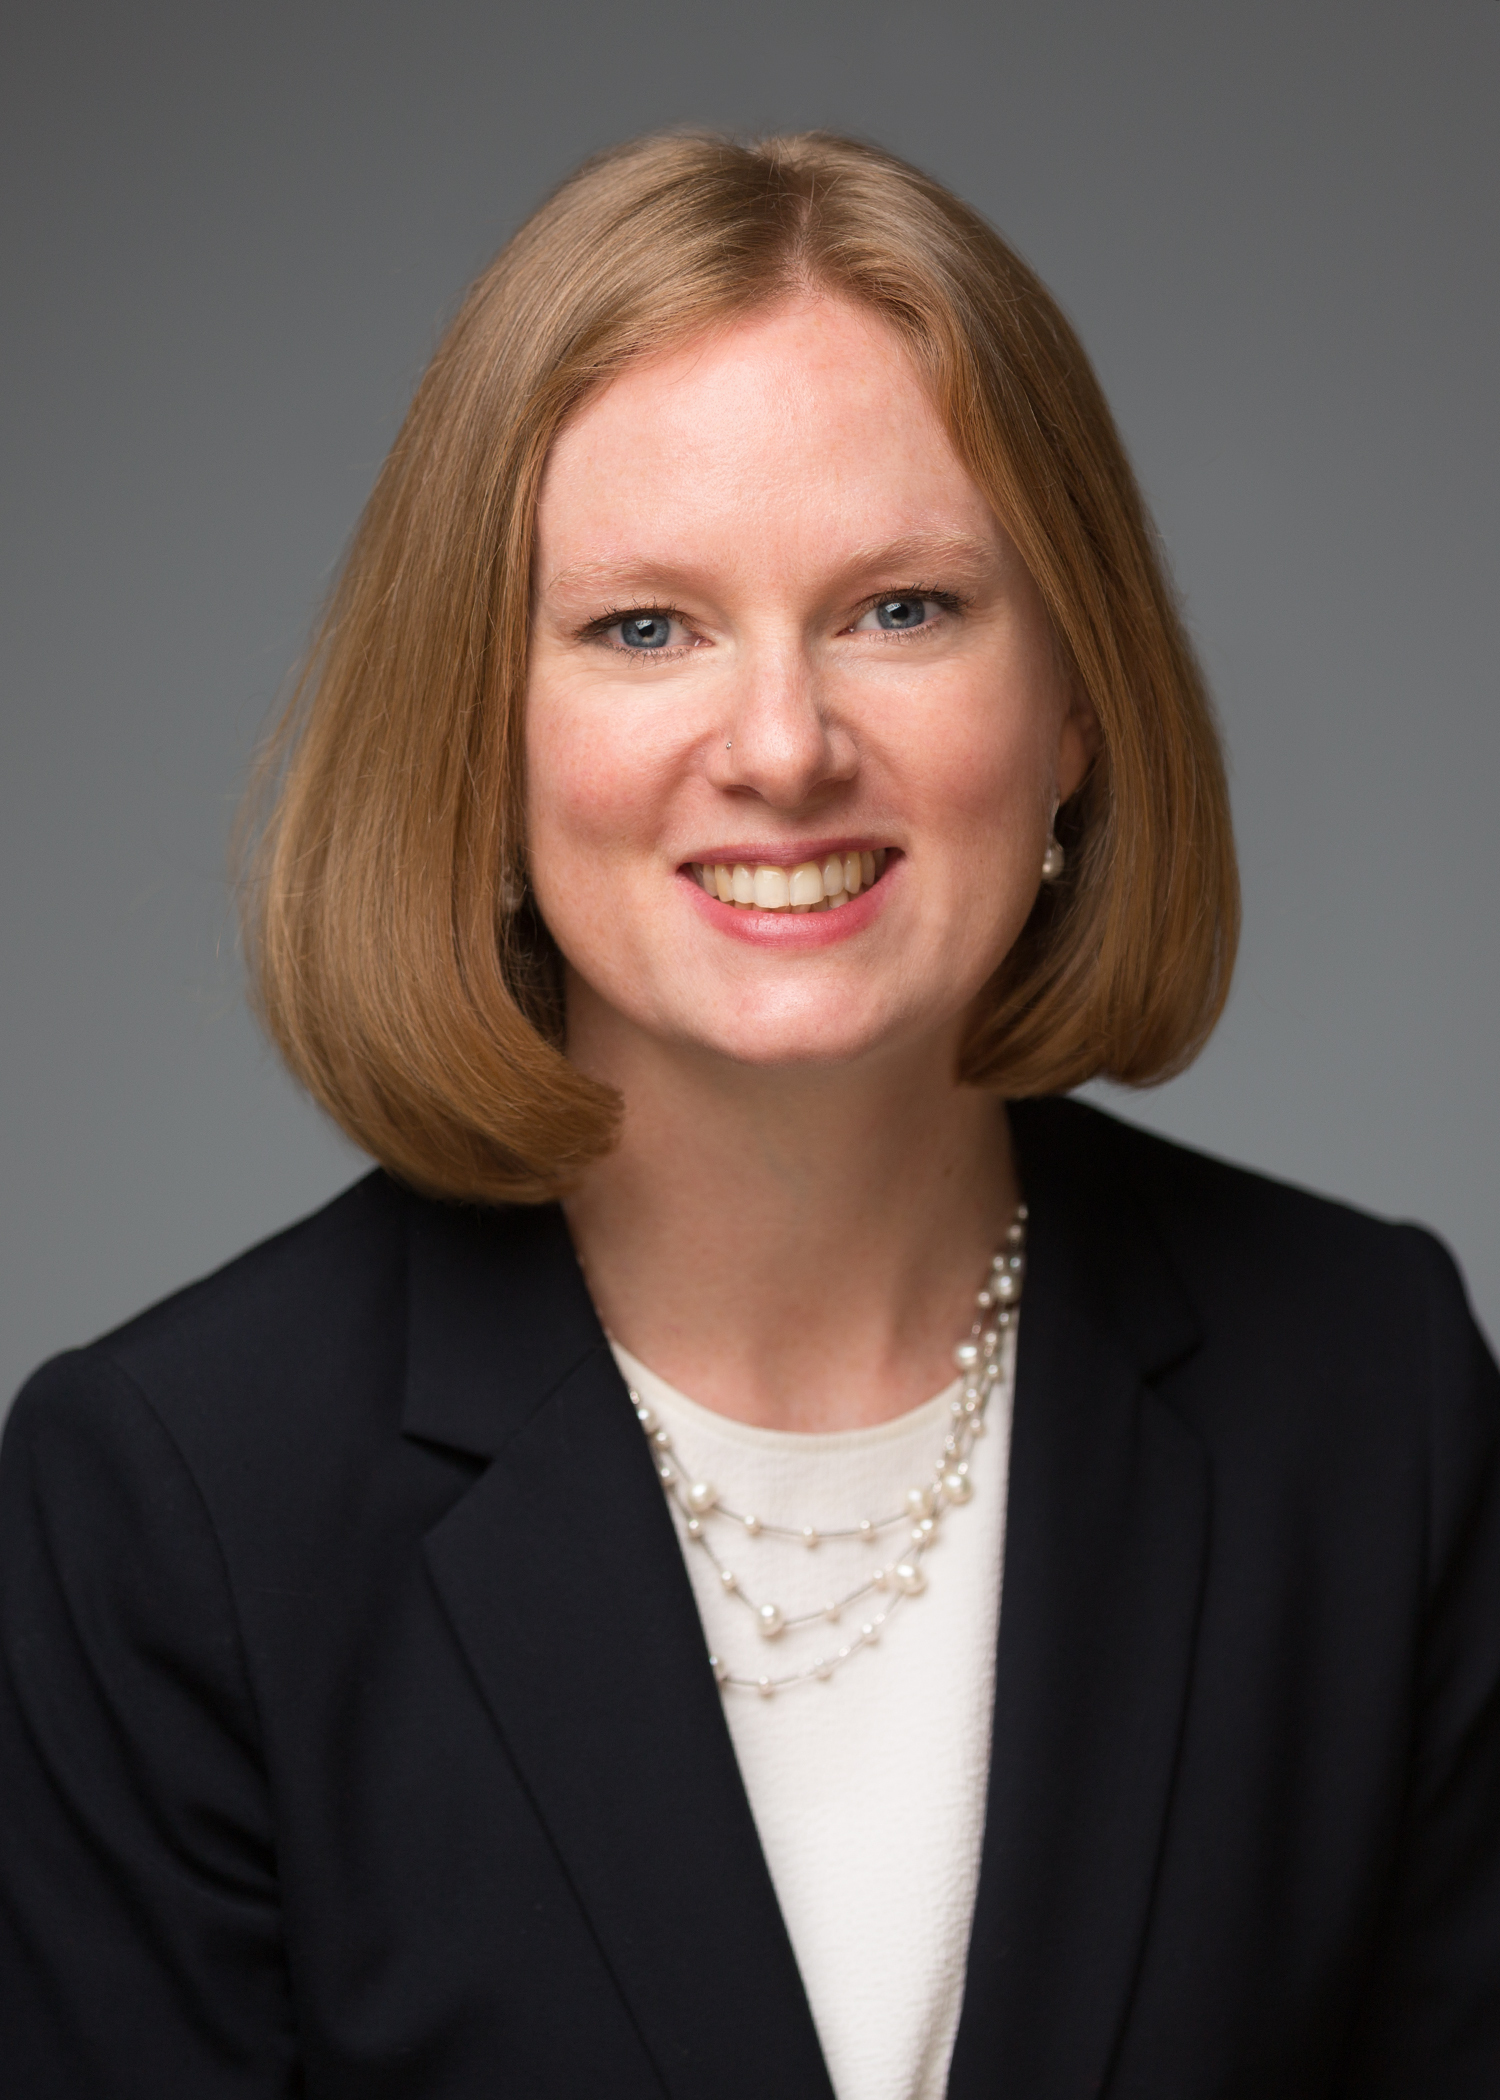 Julie Briggs, second vice president and associate actuary at The Standard. (Photo: Business Wire)